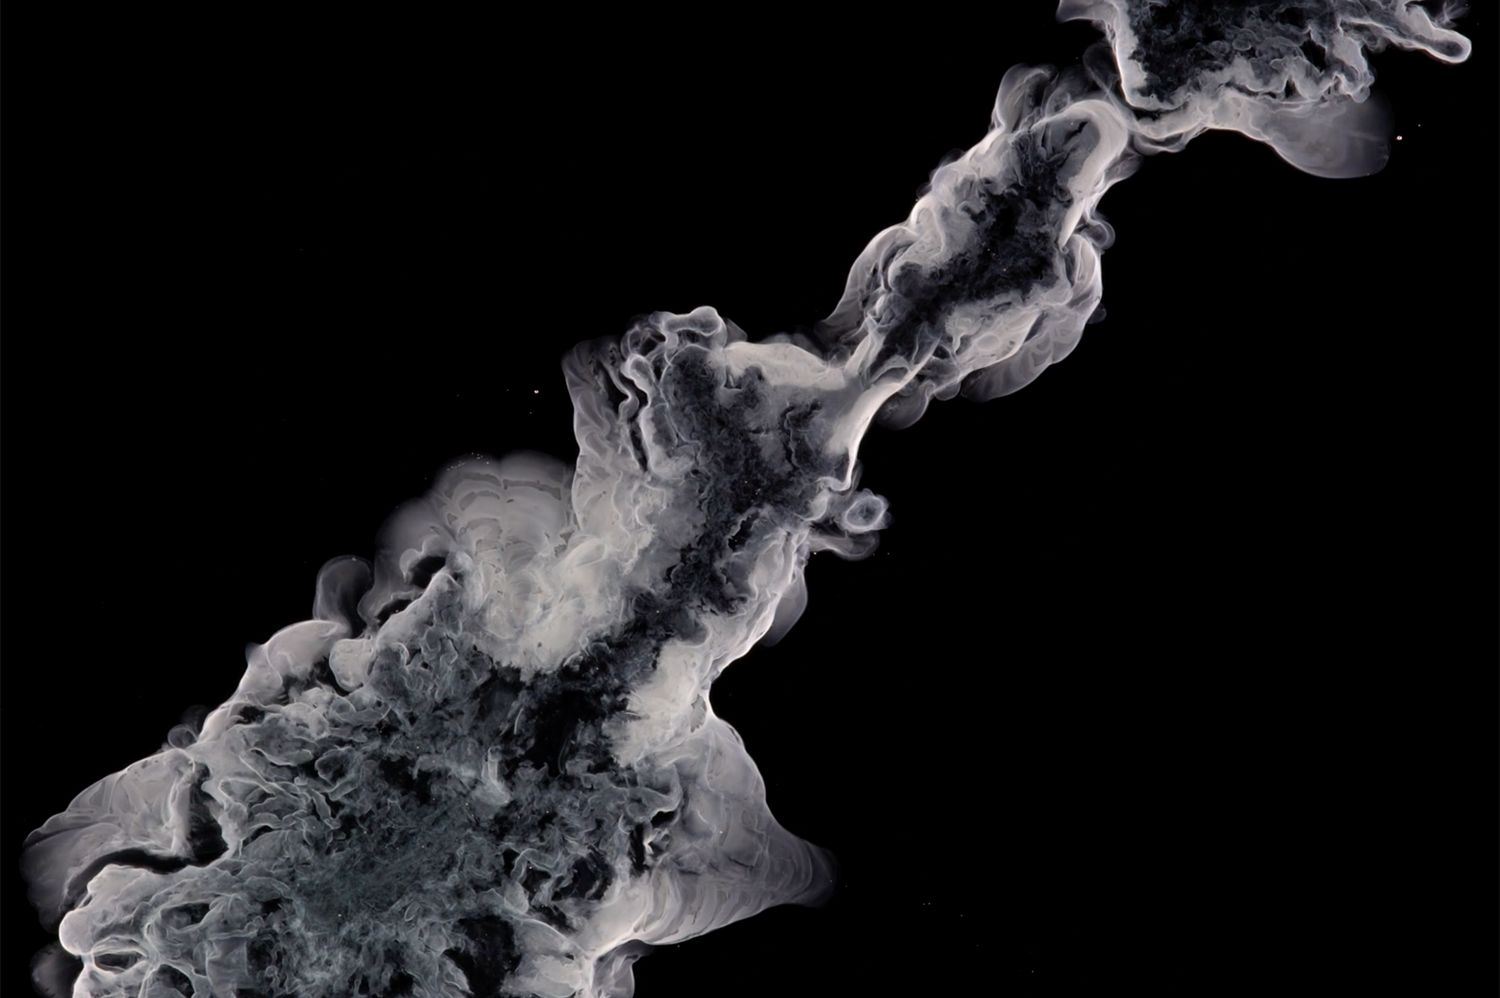 Eye catching videos show the beauty of chemical reactions